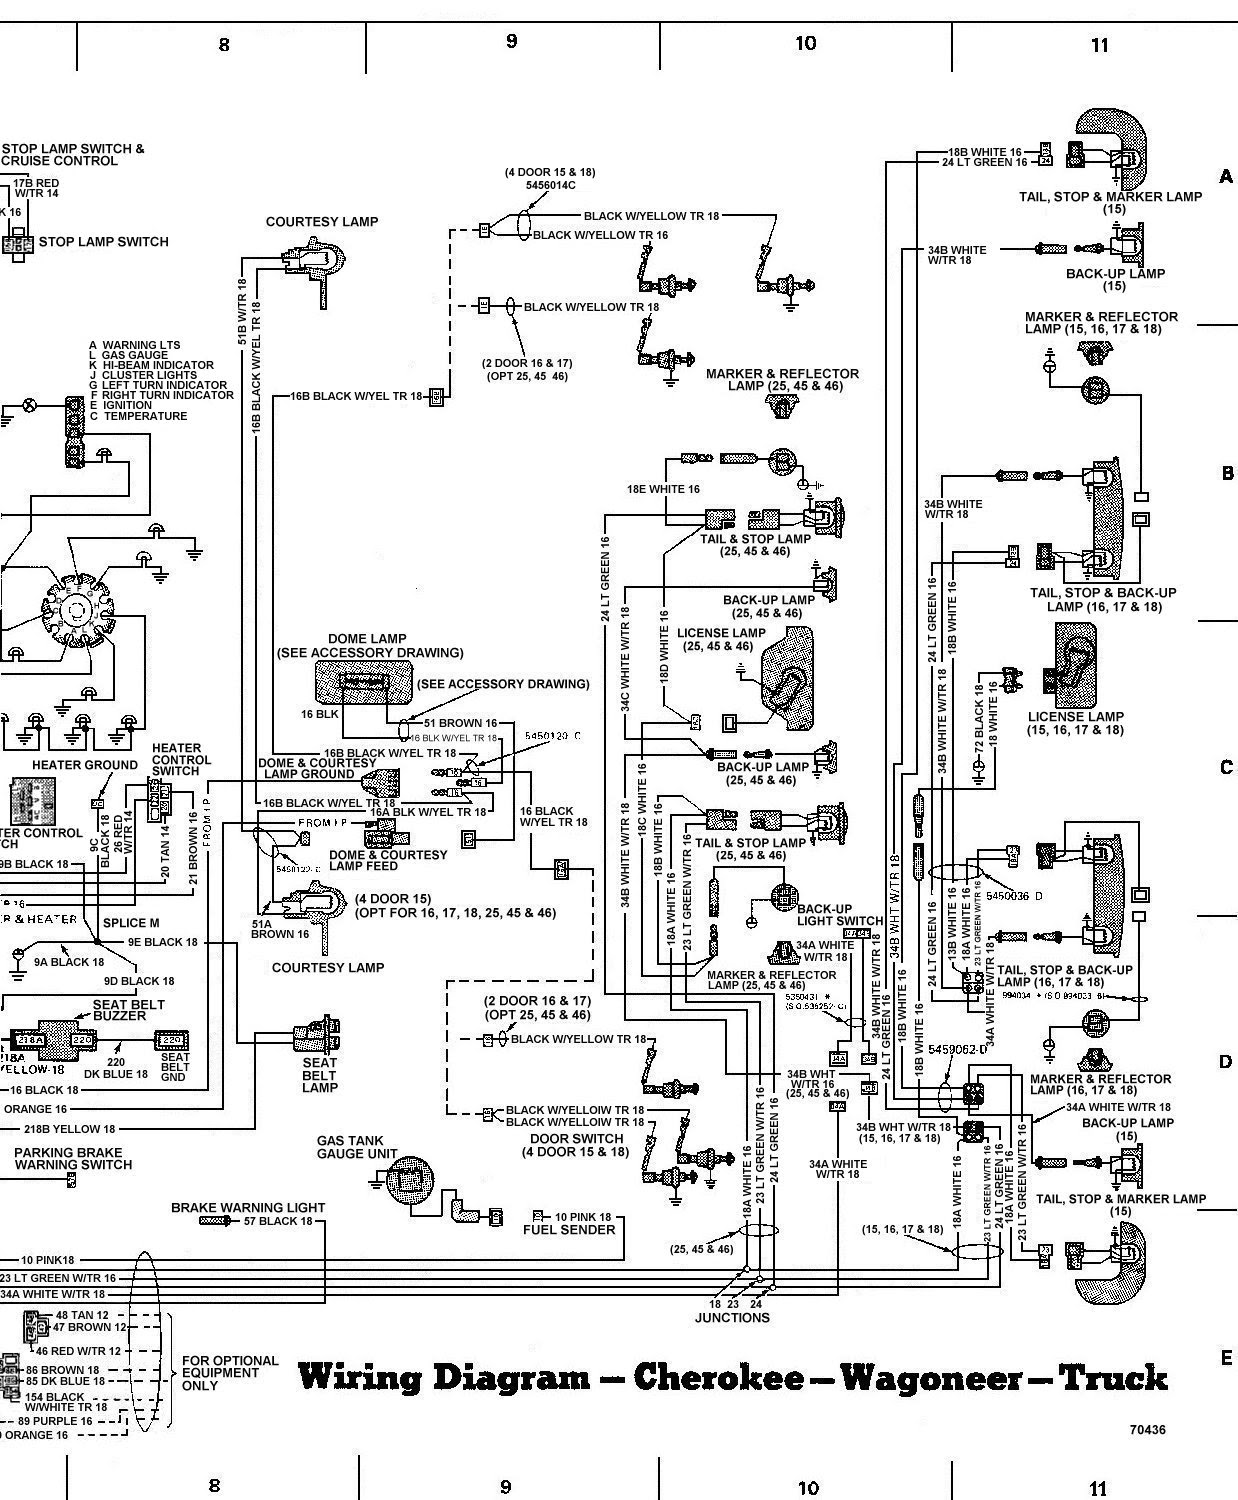 2011 Armada Stereo Wiring Diagram Wiring Diagram Source 2004 Jeep Grand Cherokee Door